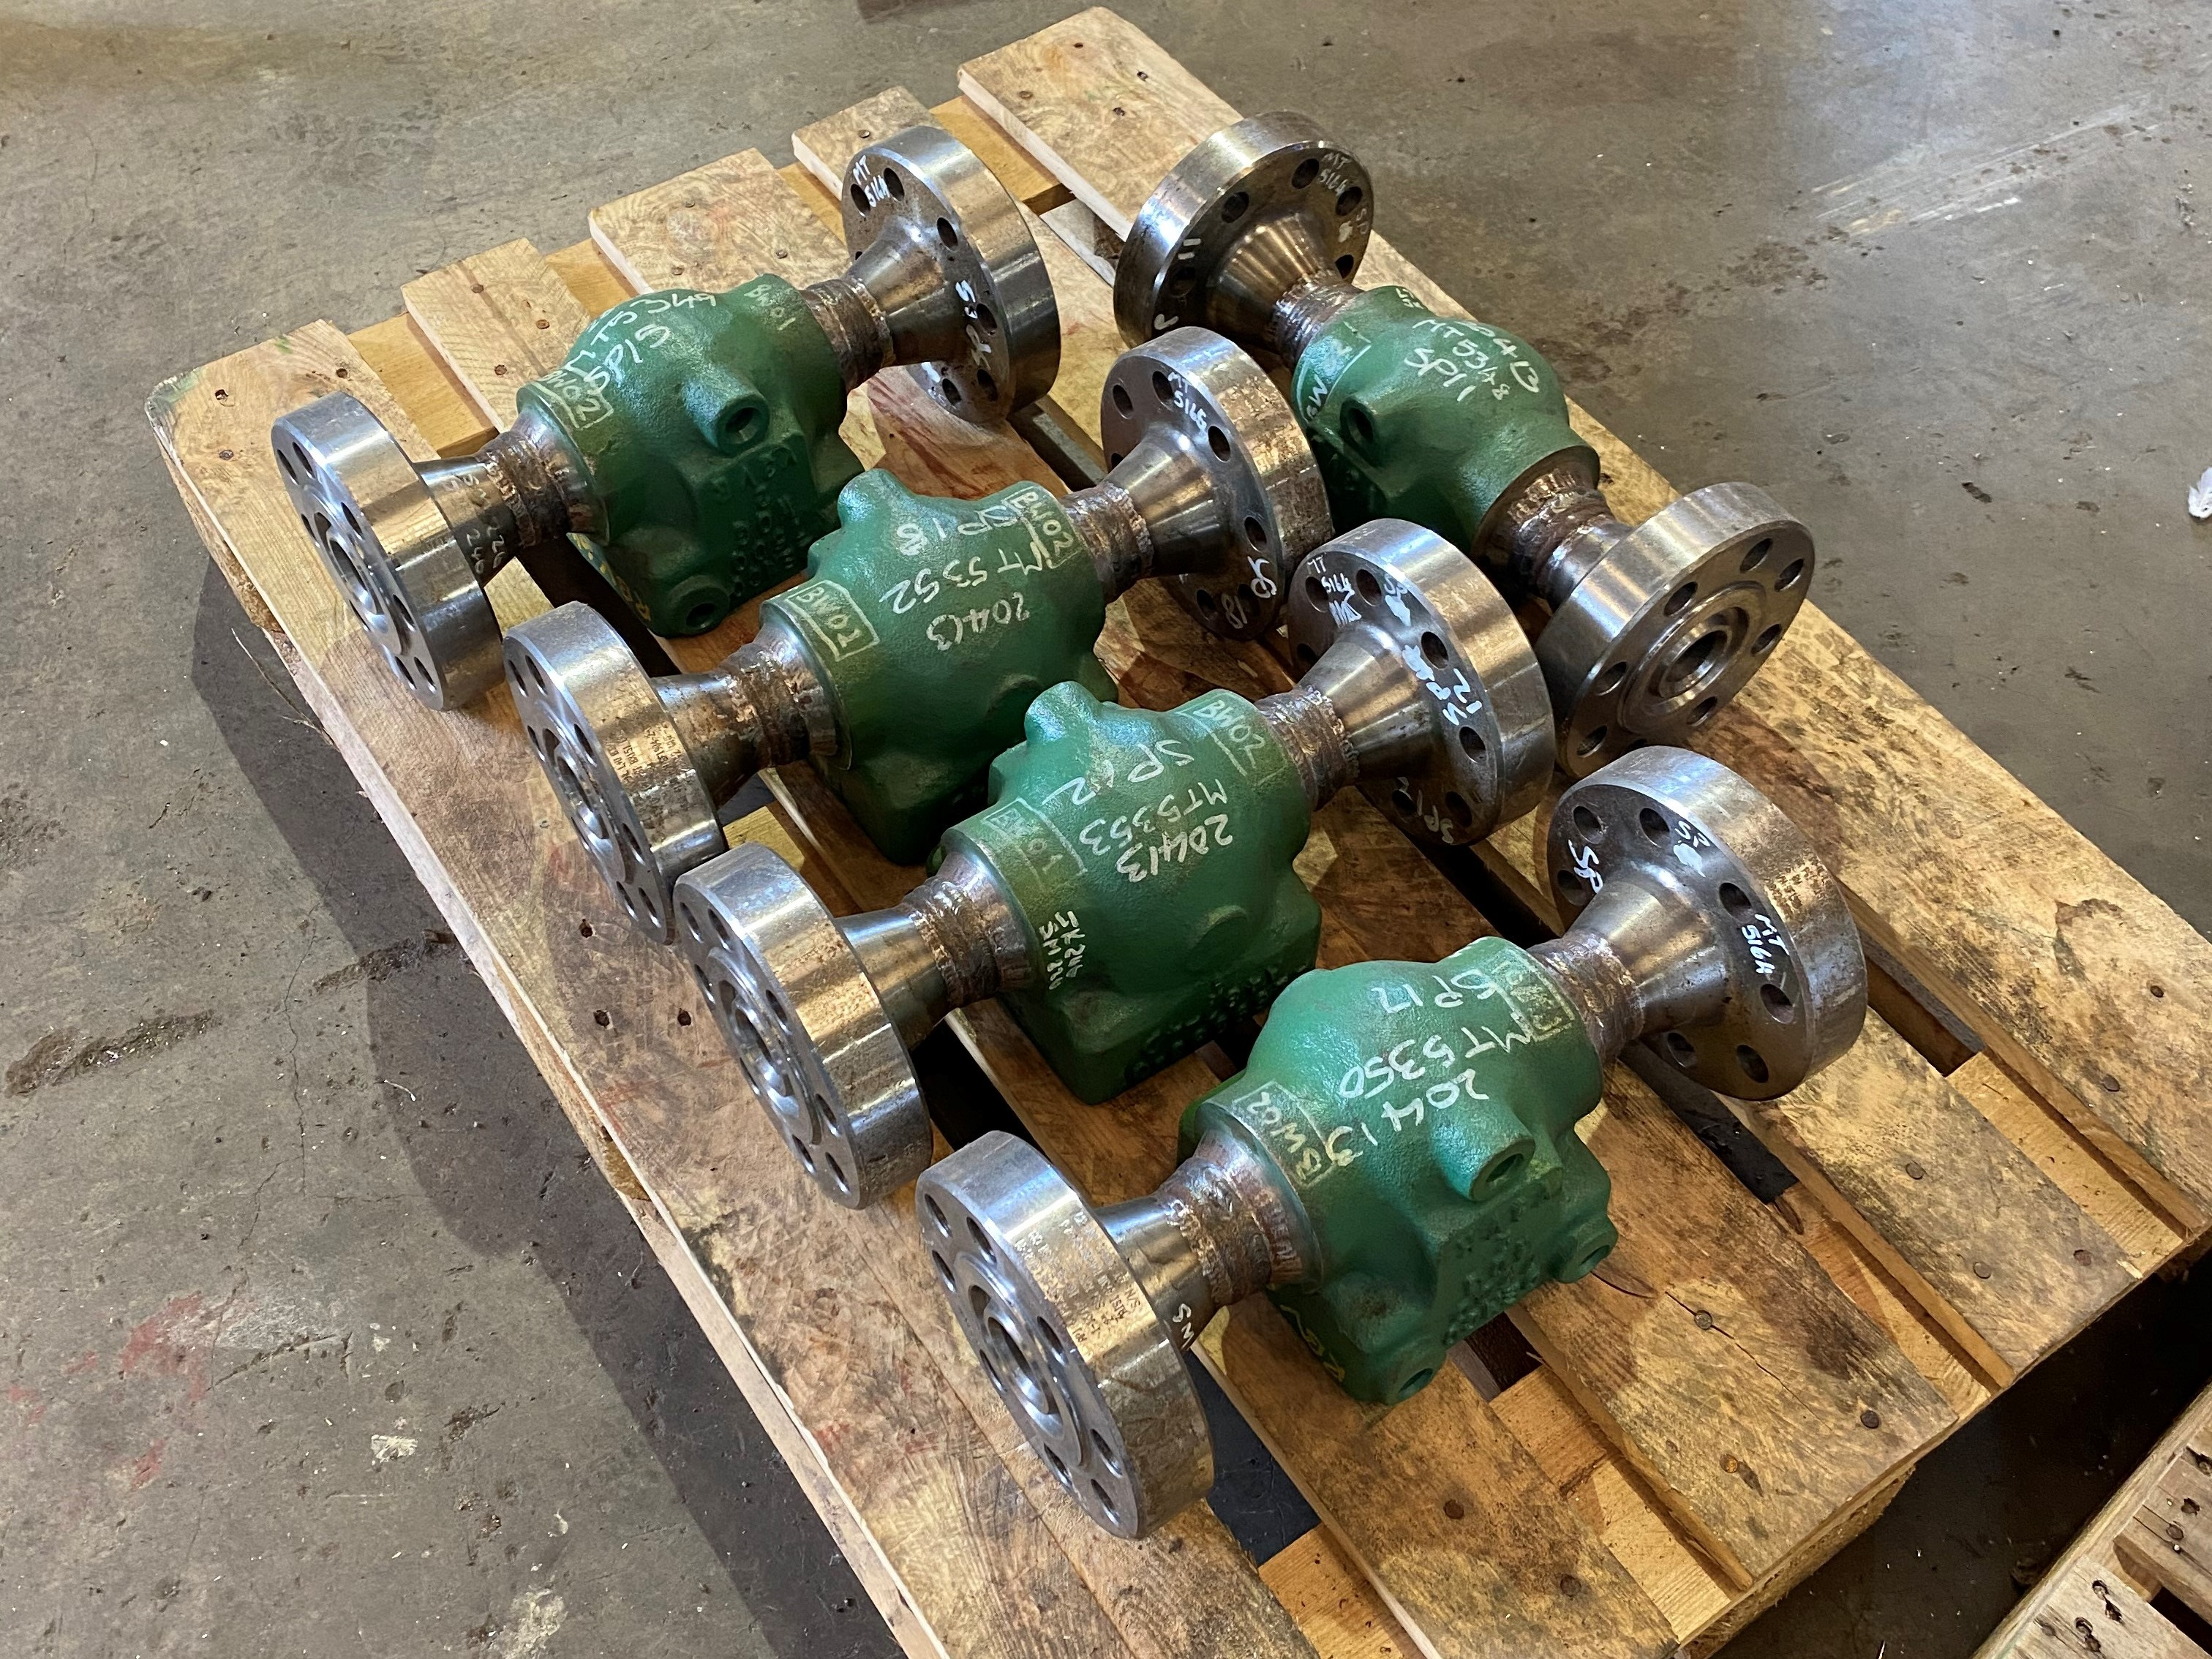 Mud ate valves with special flanged ends